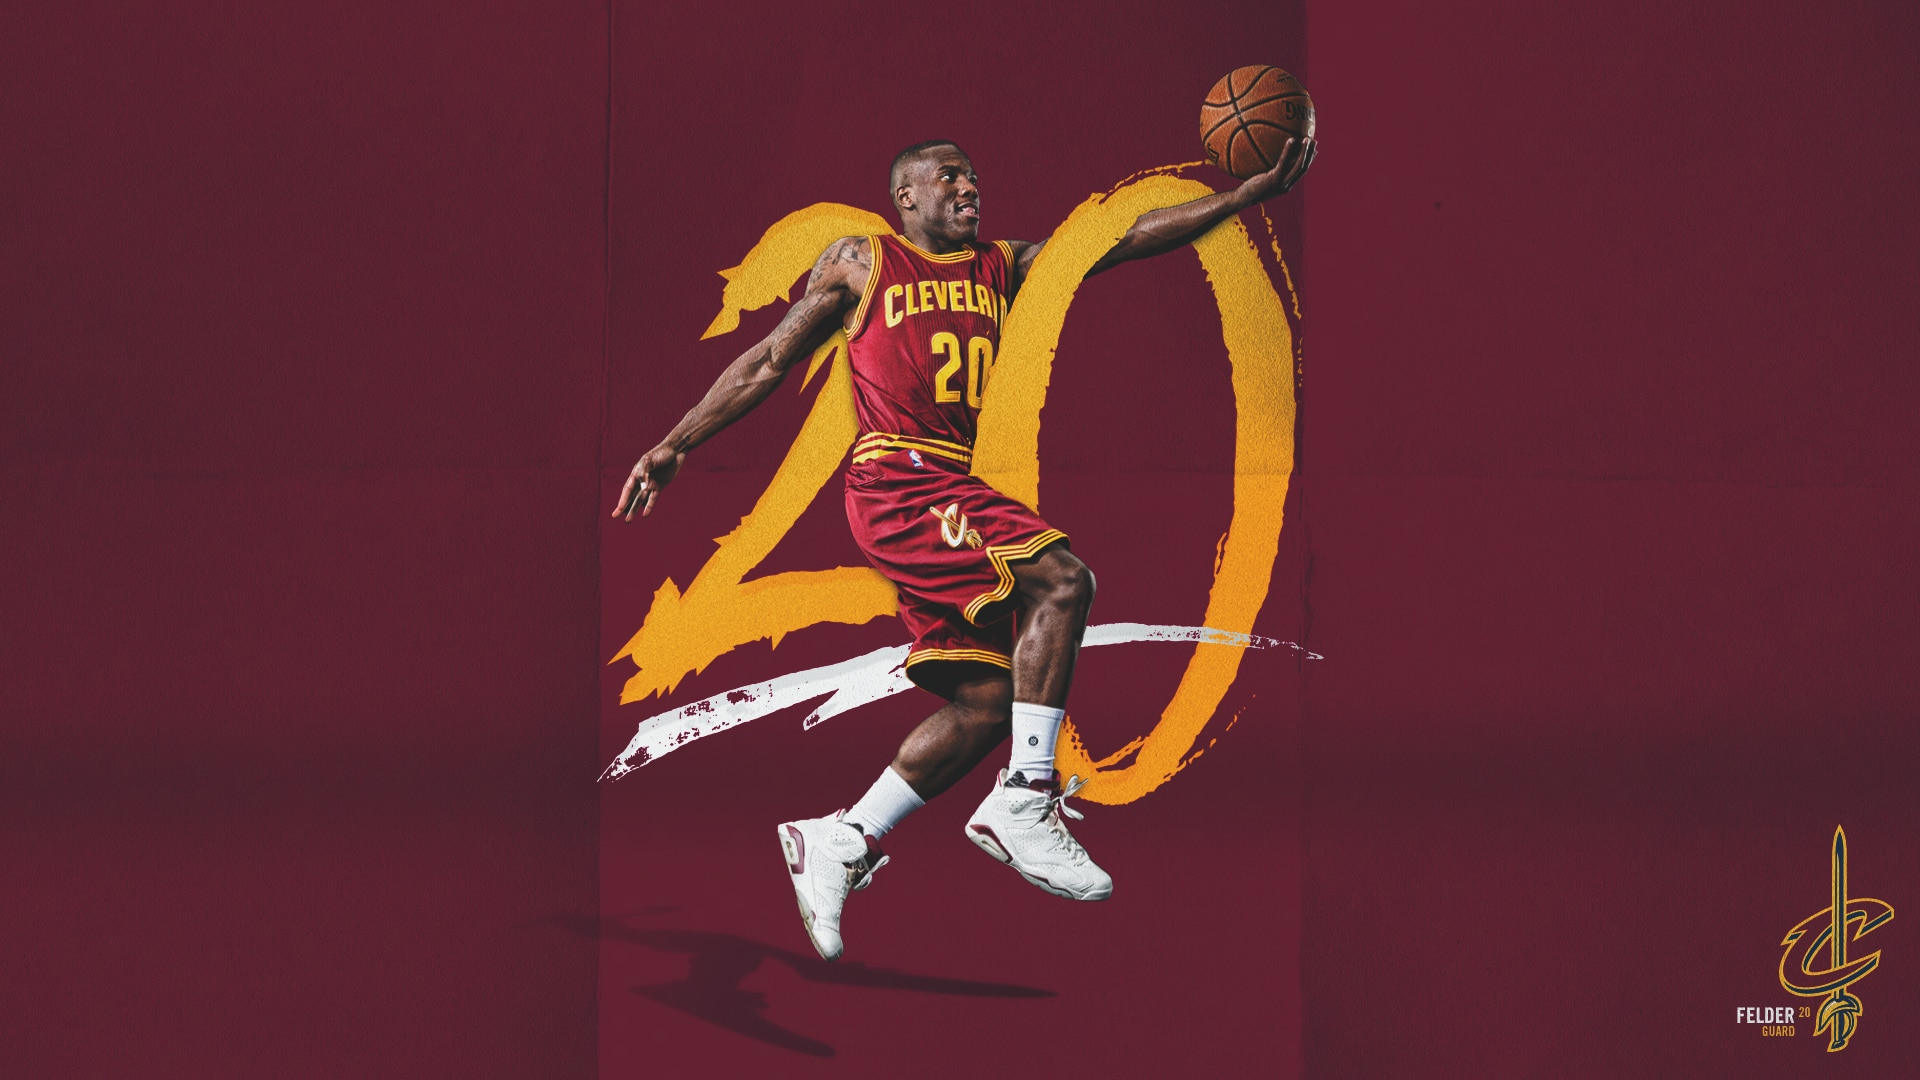 Hd wallpaper nba - Kay Felder